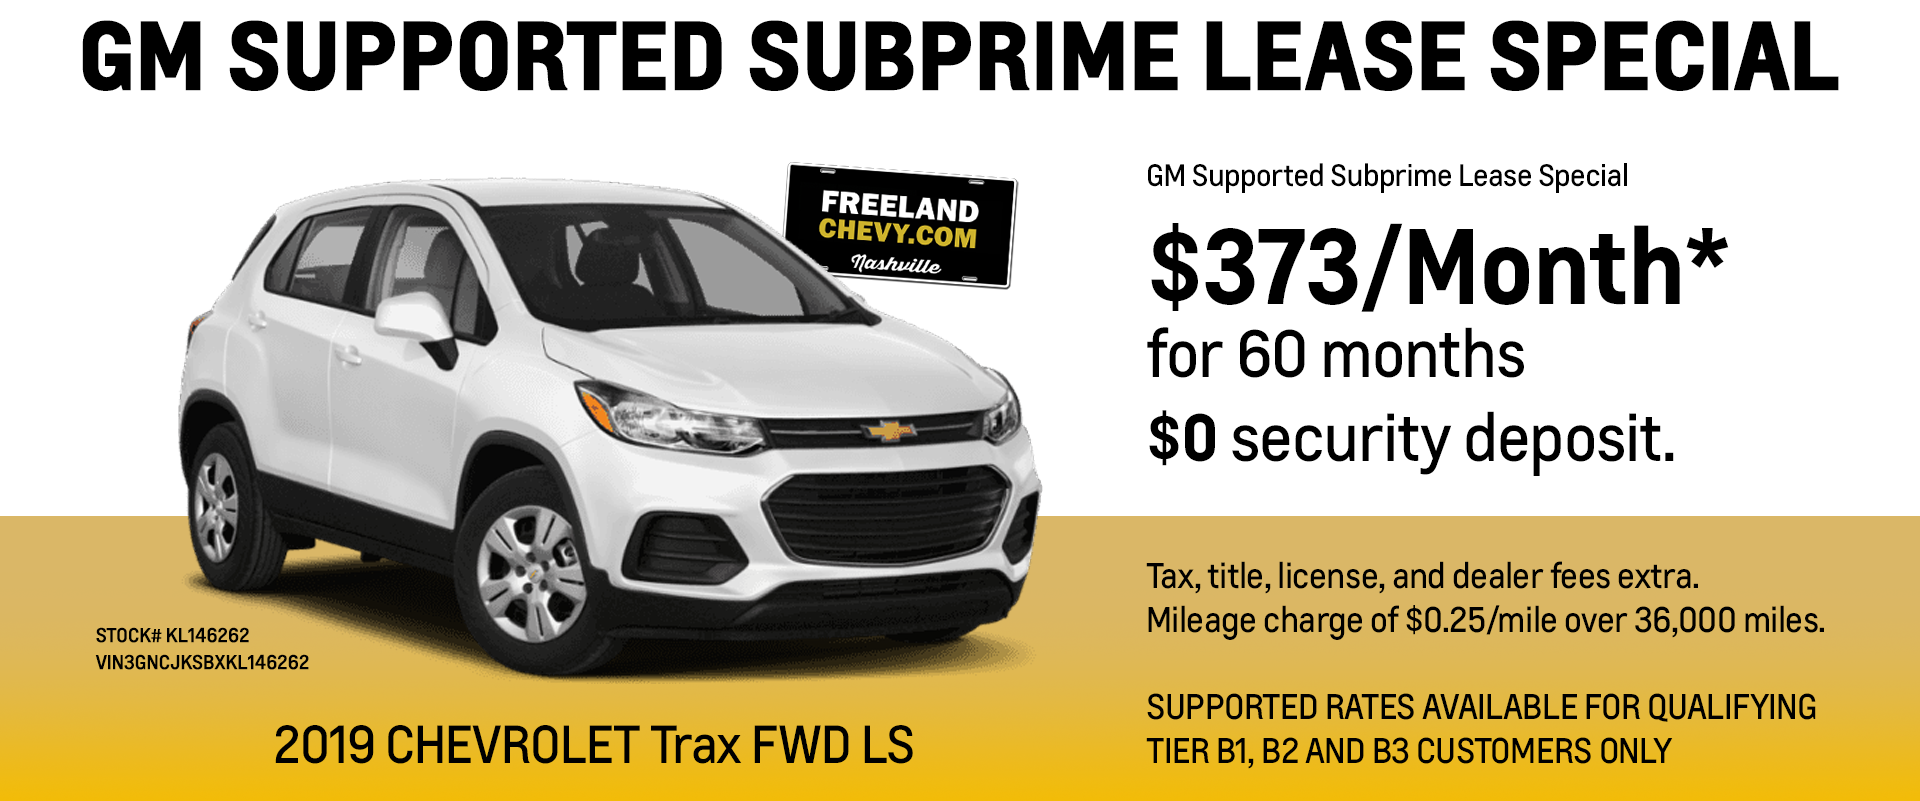 GM Supported Subprime Lease Special - 2019 Chevy Trax